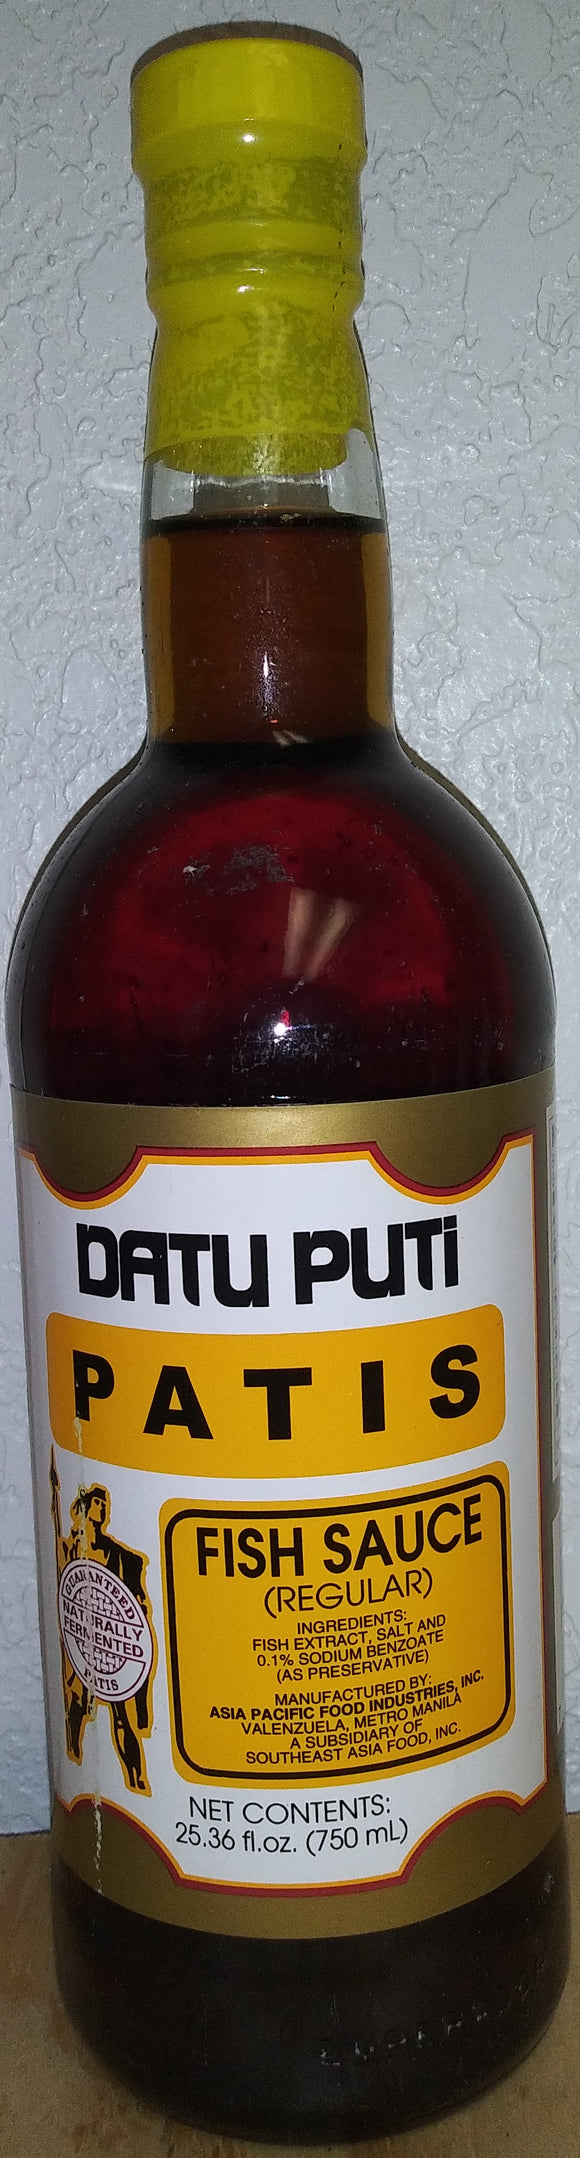 Datu Puti Patis Fish Sauce Regular